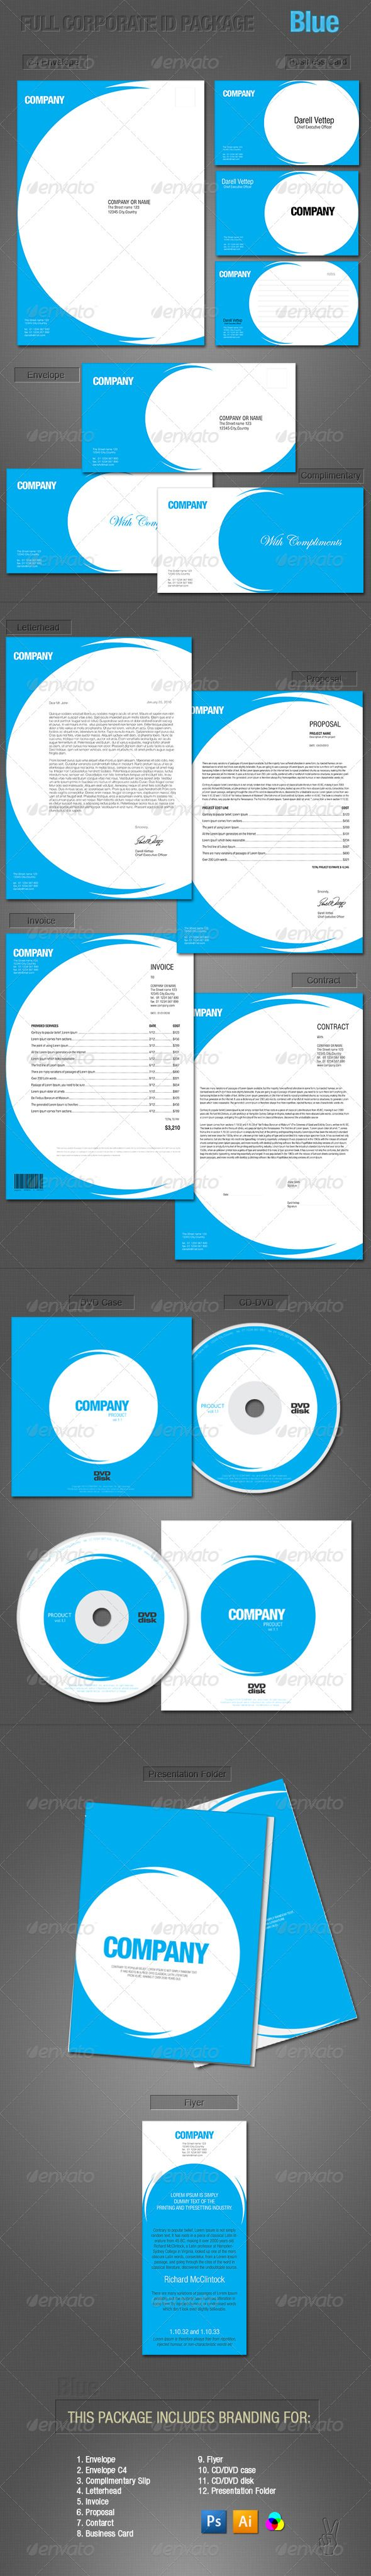 FULL CORPORATE ID PACKAGE - BLUE Corporate Identity is perfect way to create complete corporate style vitally important for any business. This is a High Quality package of complete printer-ready files for all the stationery needs of a business.